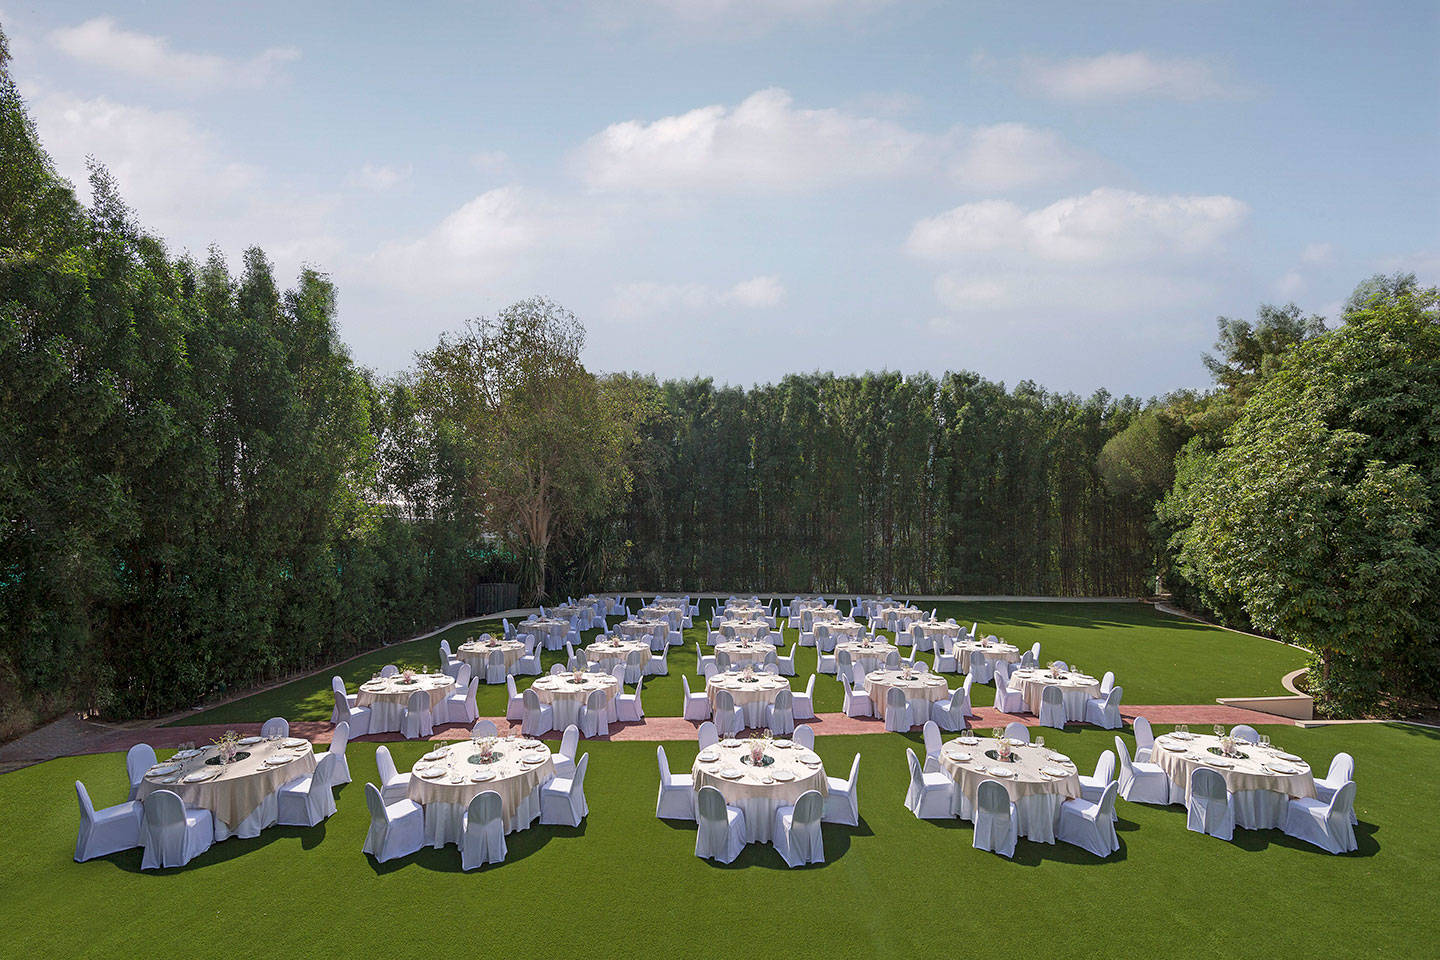 Tables set up on lawn for event at Jumeirah Creekside Hotel